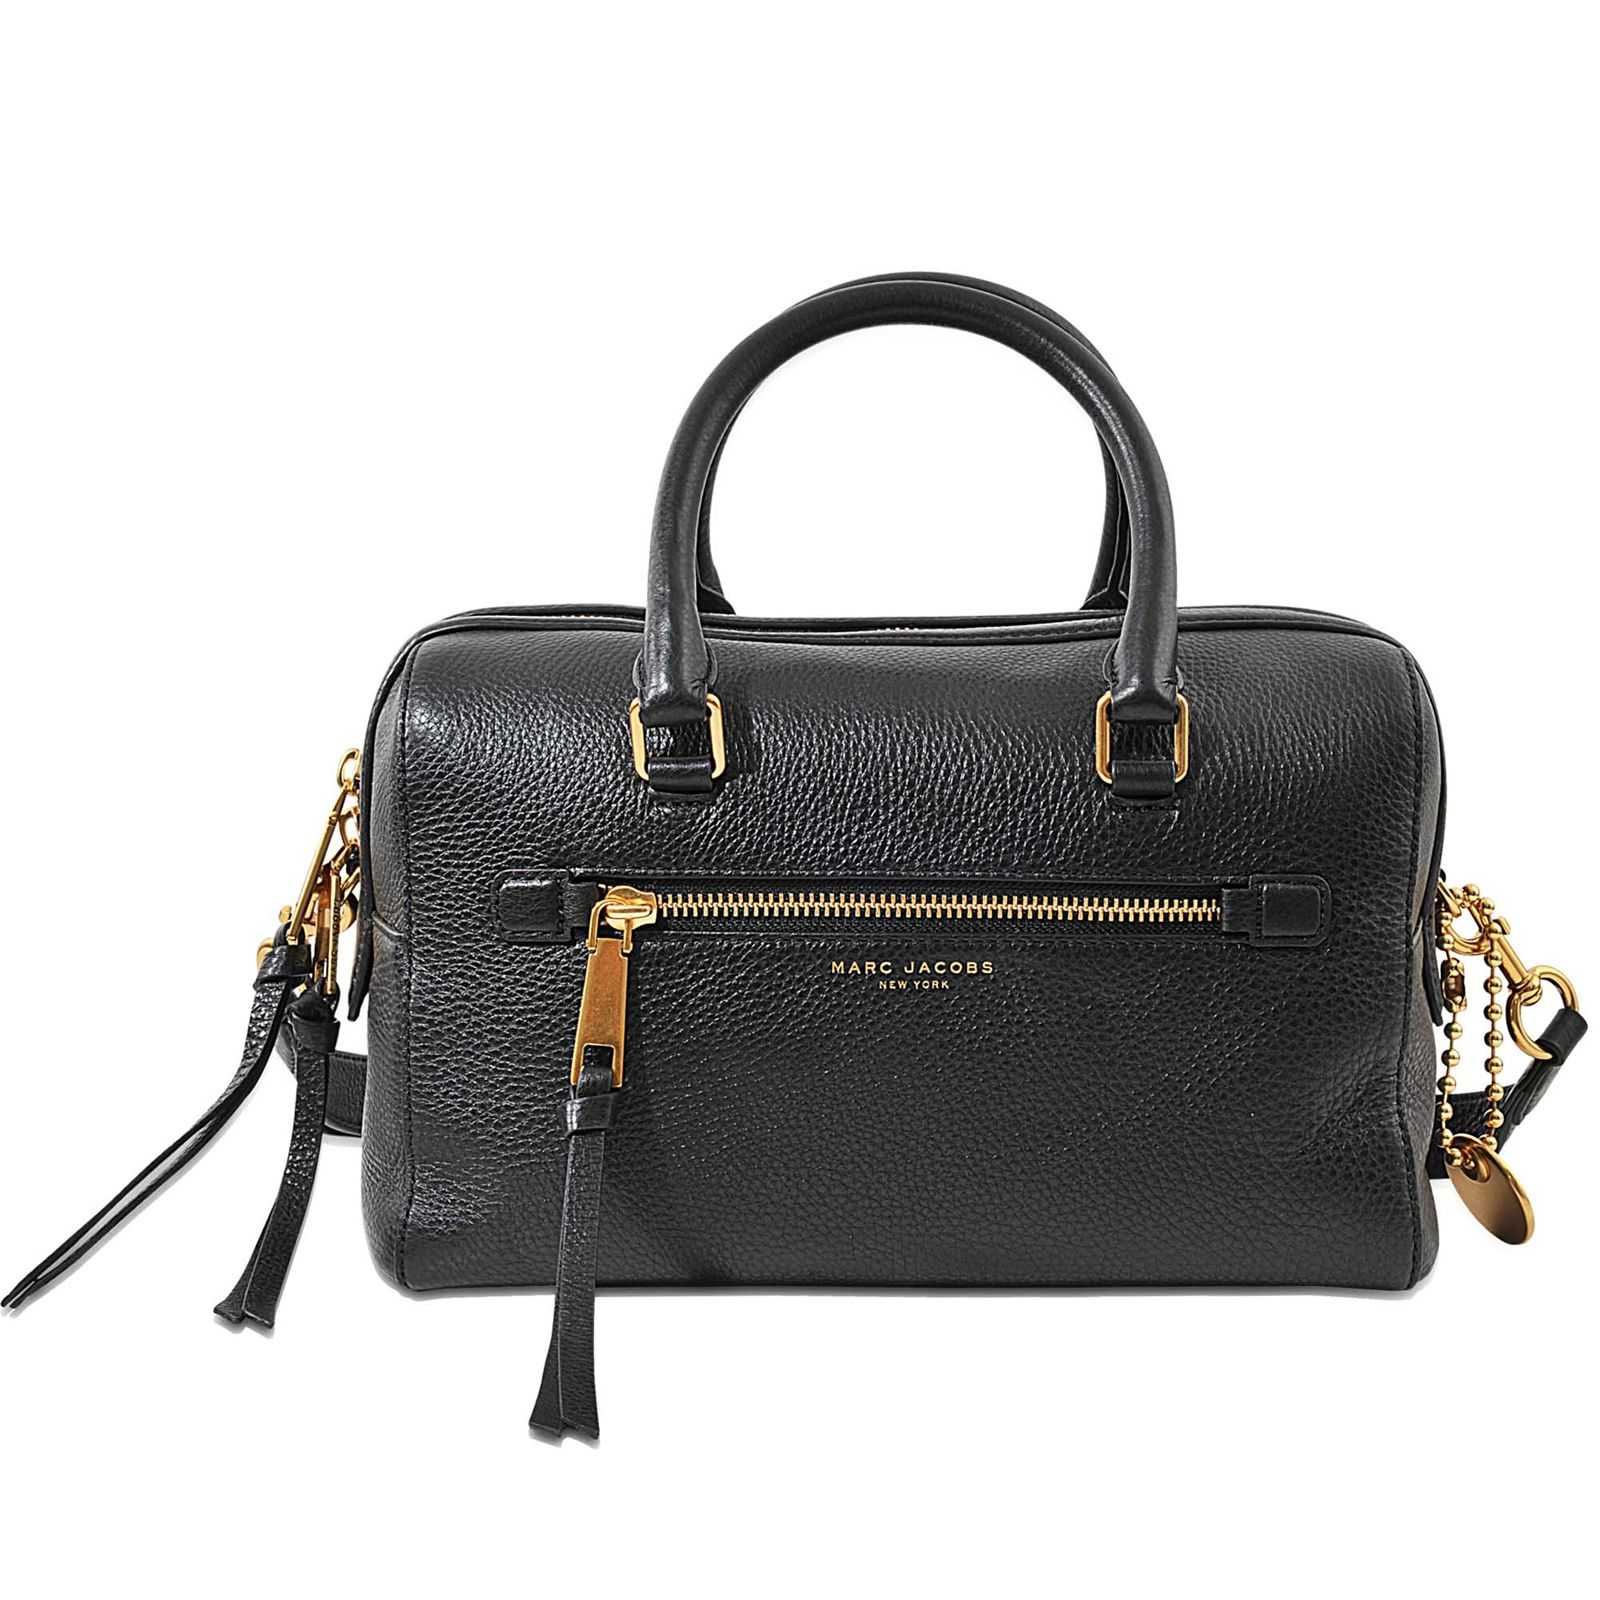 Marc Jacobs Bauletto - Sac doctor bag en cuir - noir   BrandAlley 4af7d5091fe2